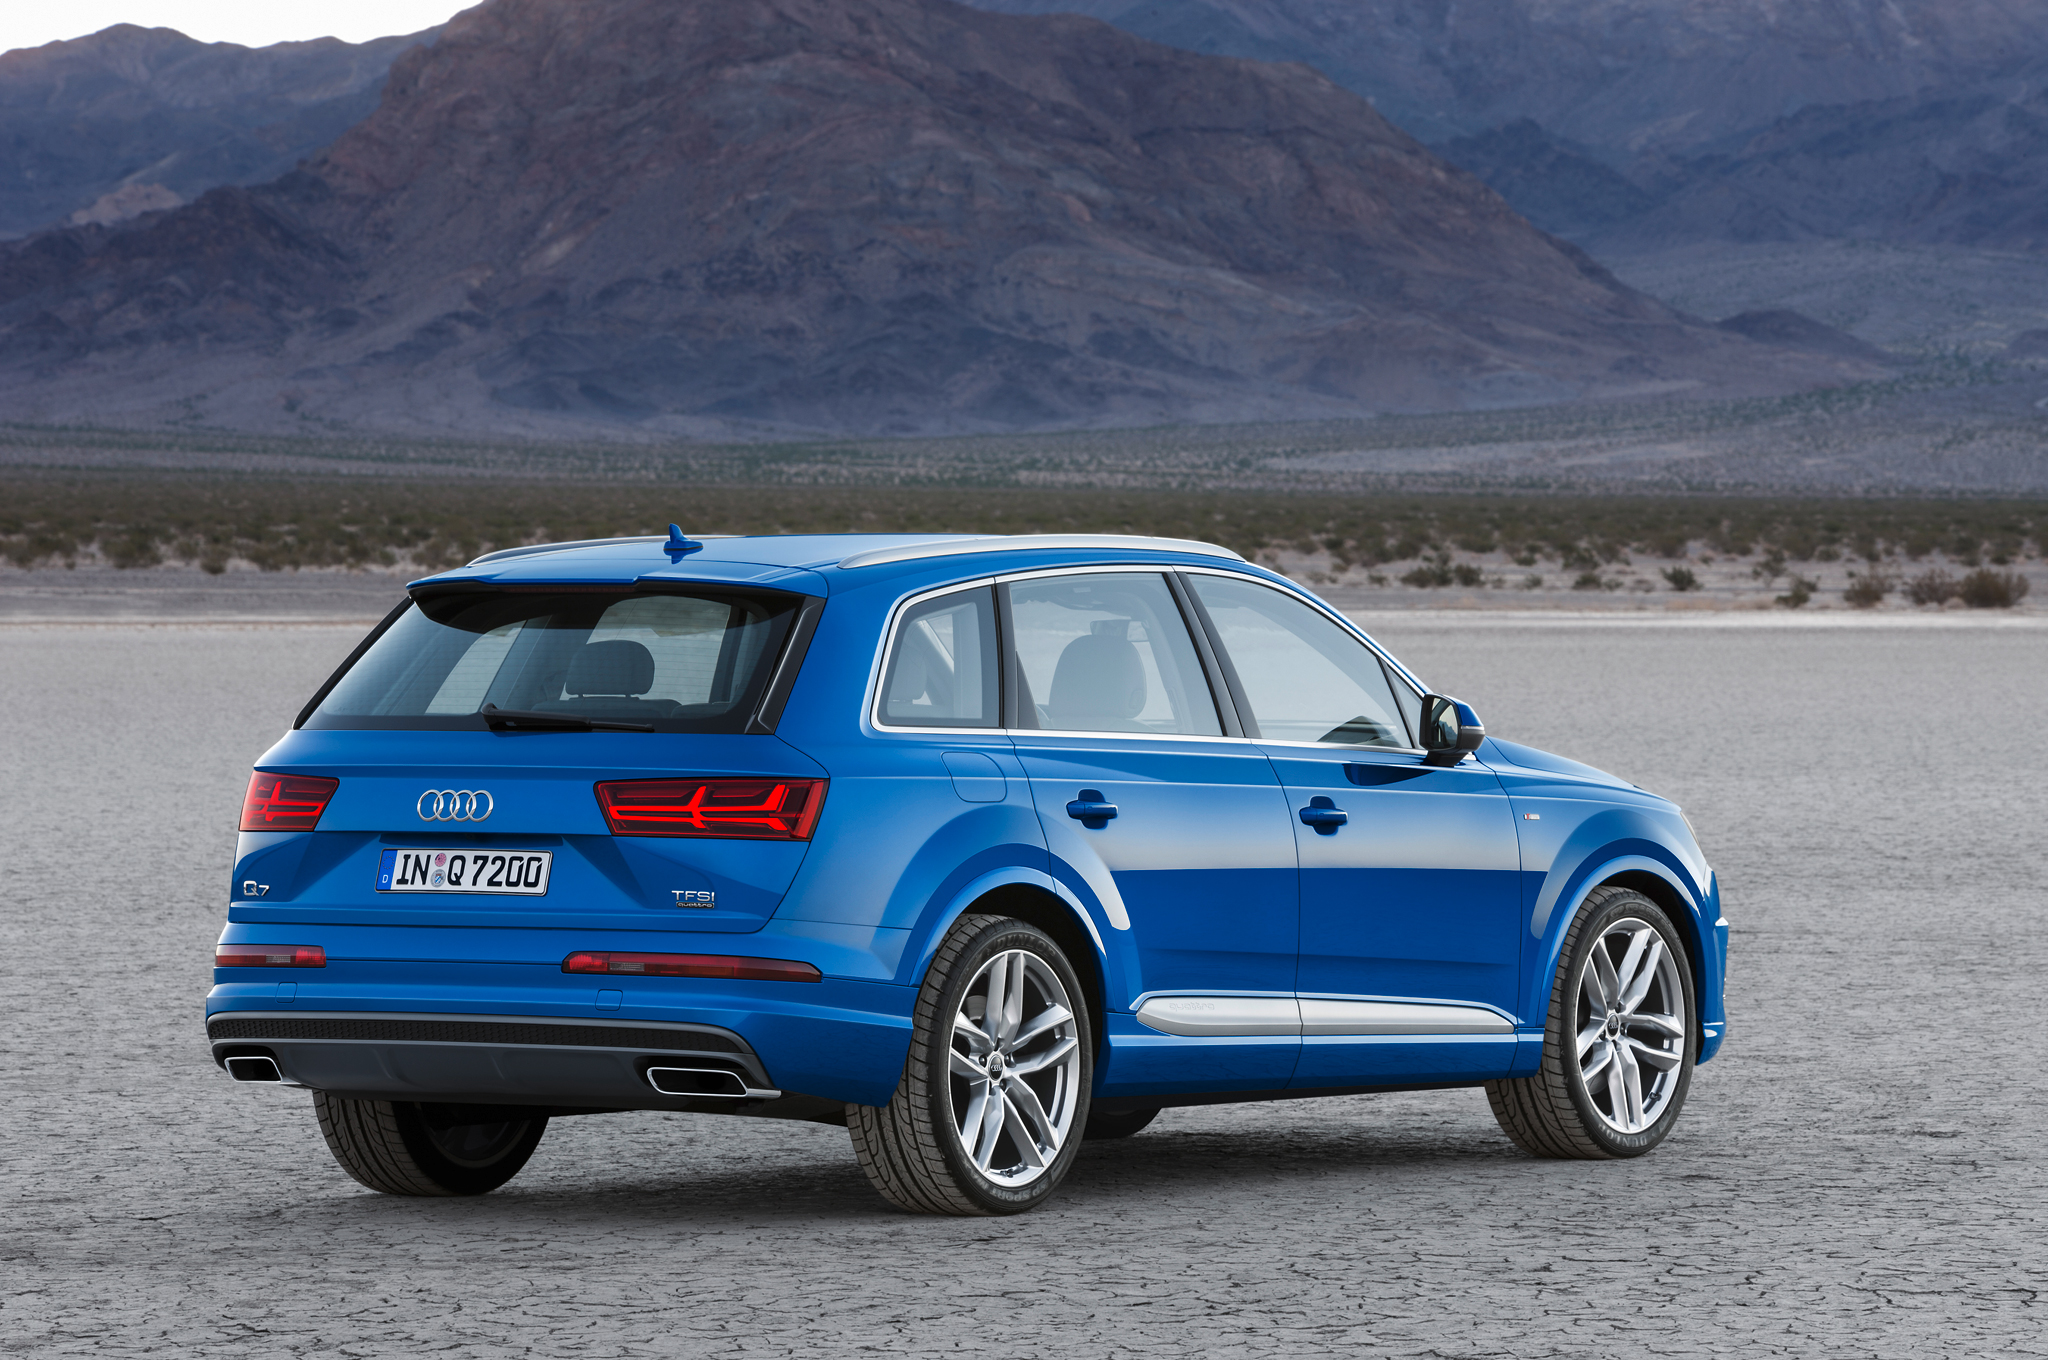 2016 Audi Q7 Rear Side View (Photo 4 of 8)